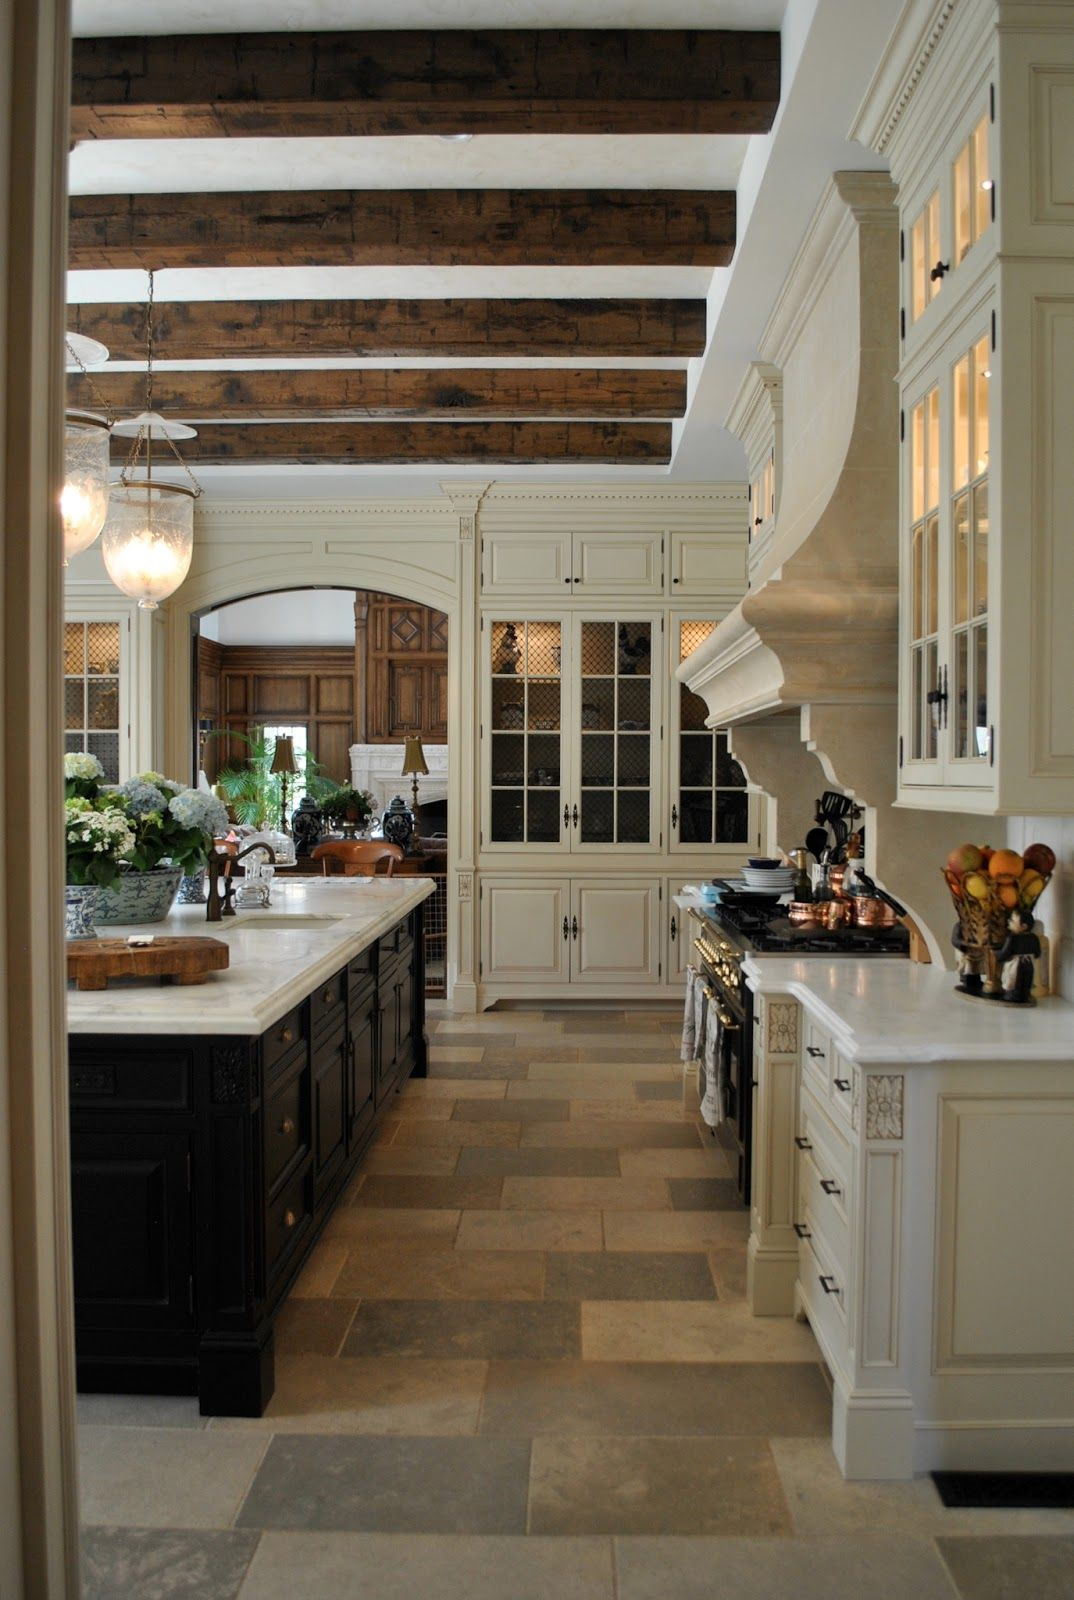 Kitchen in The Enchanted Home blog by Tina with French Country white cabinets and stone floors